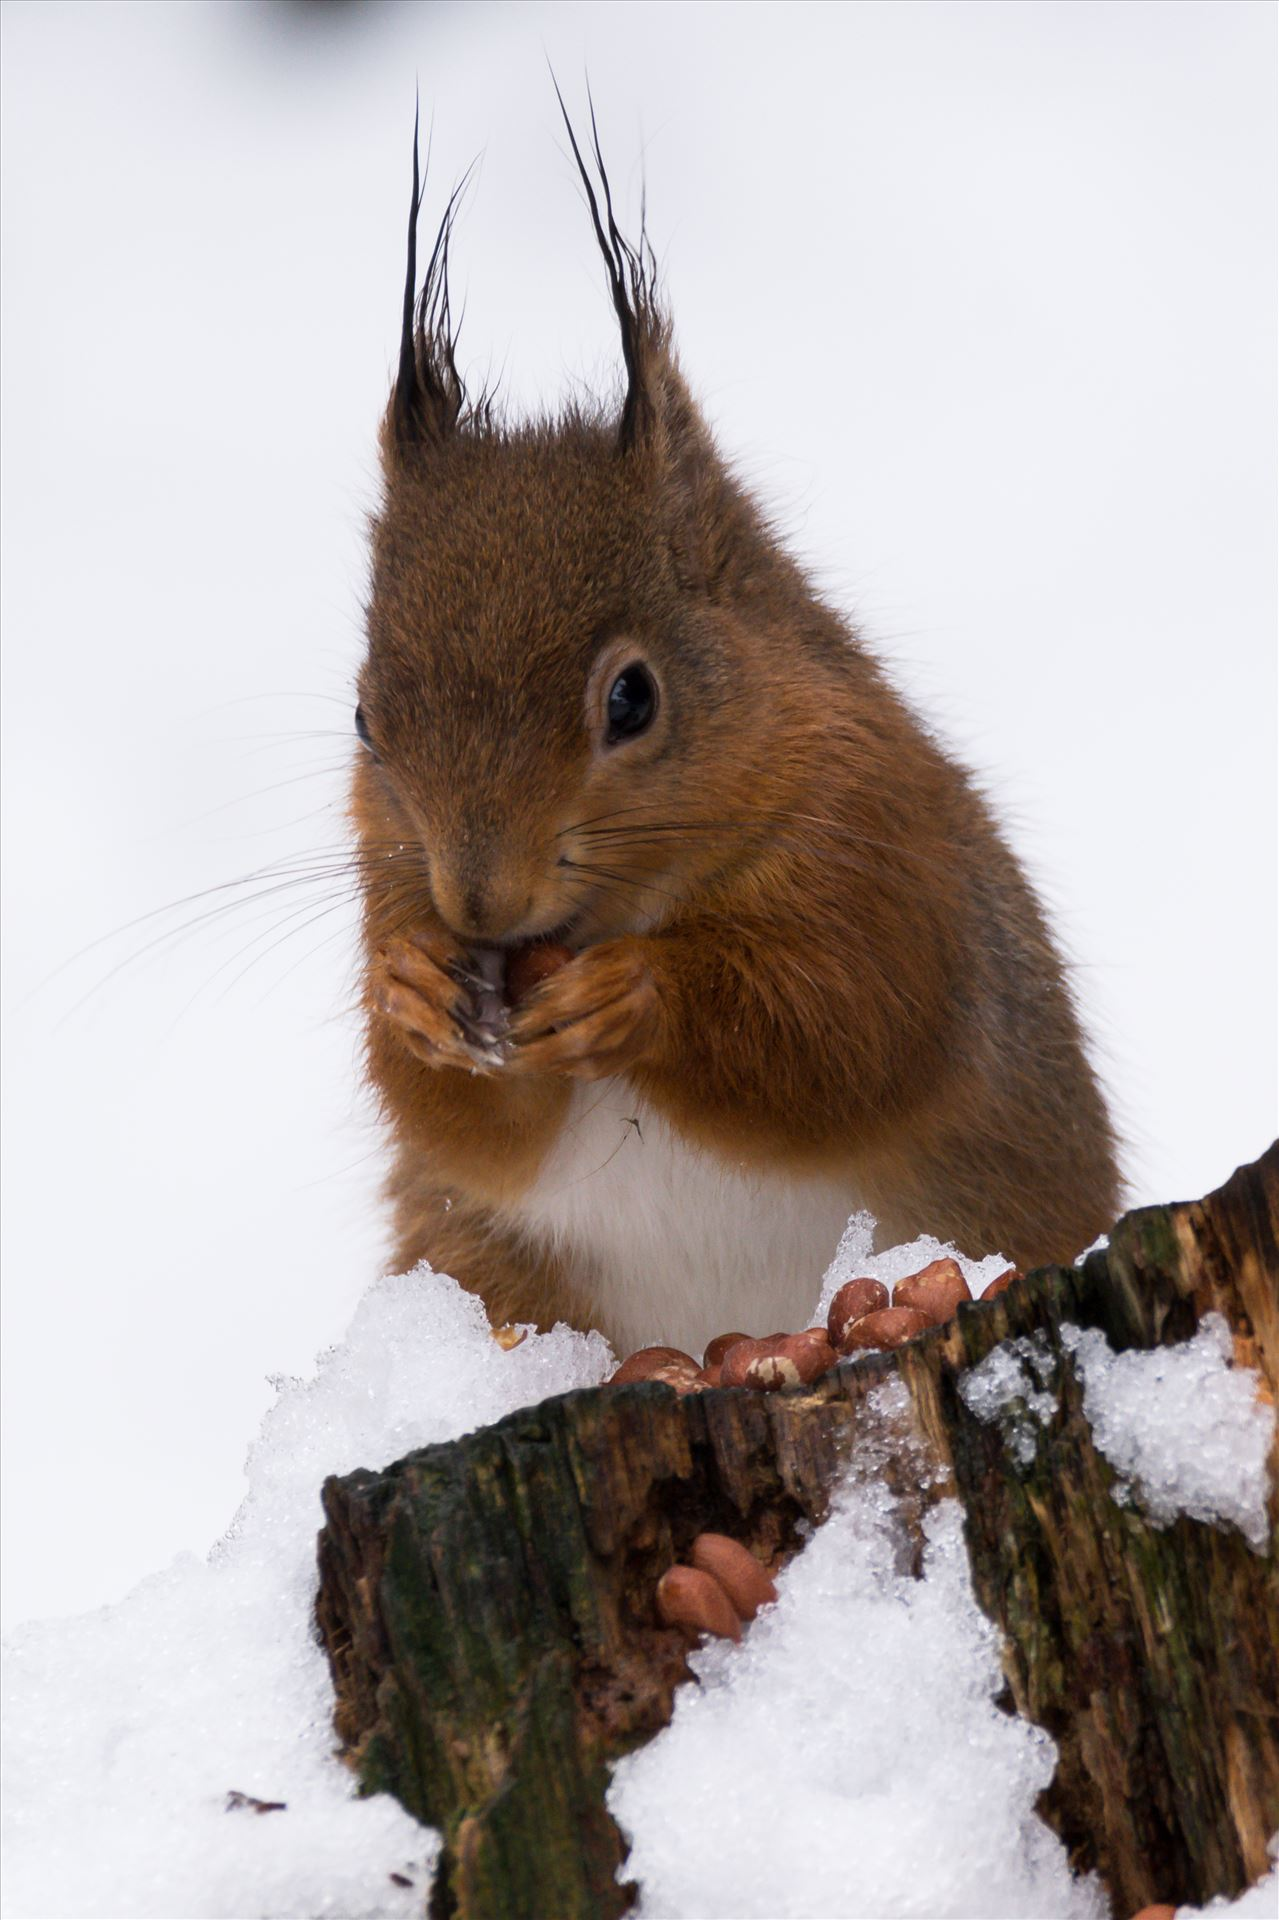 Red Squirrel in the Snow - Red Squirrel, taken at Pow Hill March 2018, after The Beast from the East hit by AJ Stoves Photography